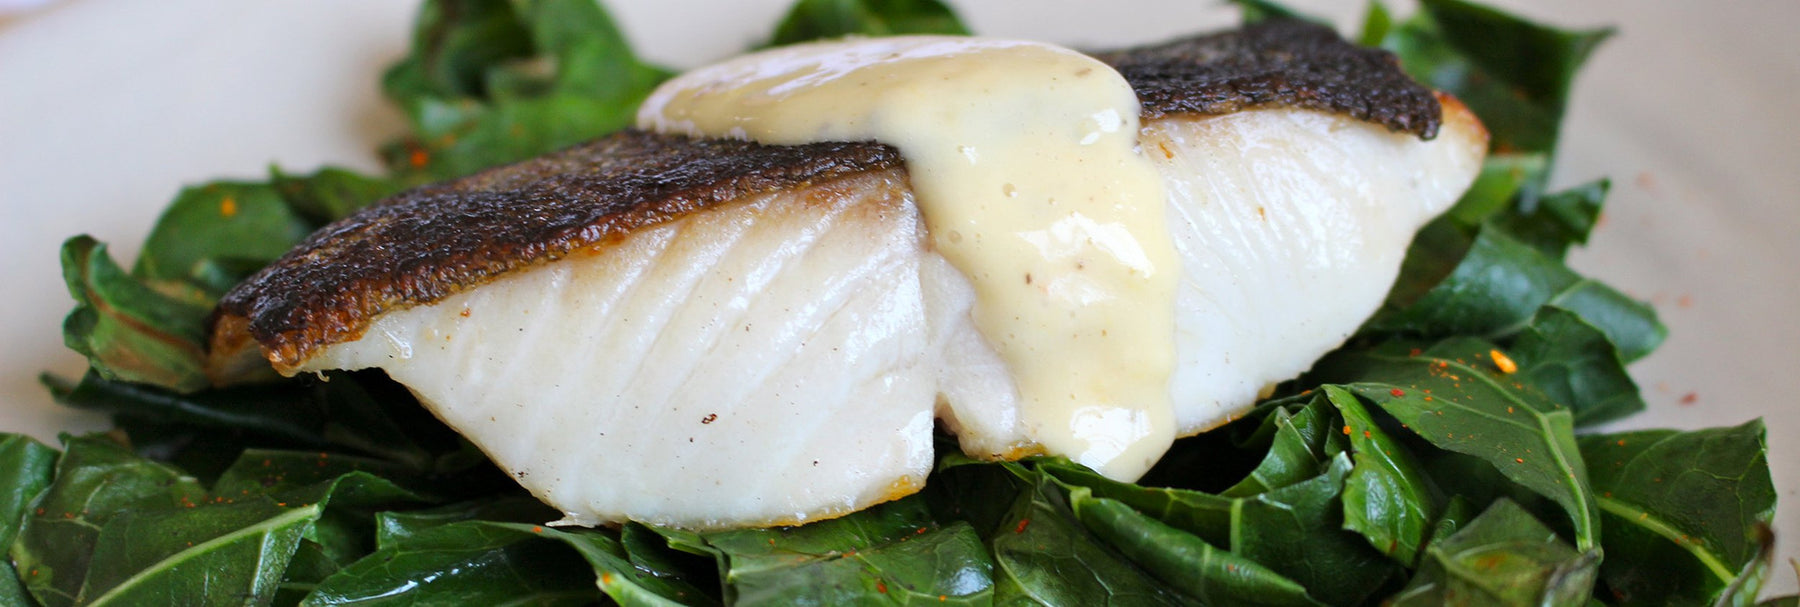 Pan Seared Sablefish Black Cod With Lemon Pepper Aioli Recipe Sitka Salmon Shares